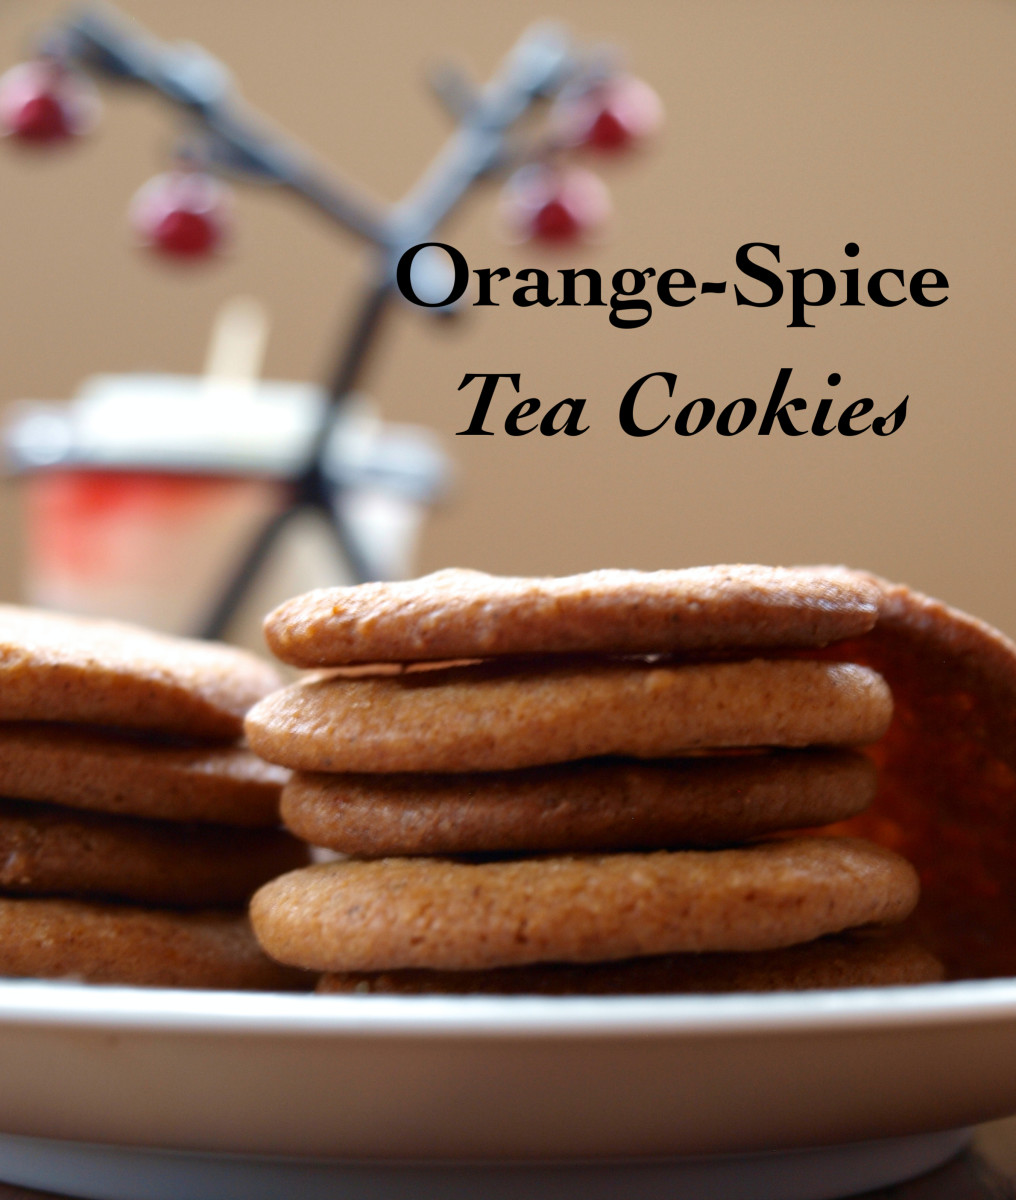 Orange-Spice Tea Cookie Recipe